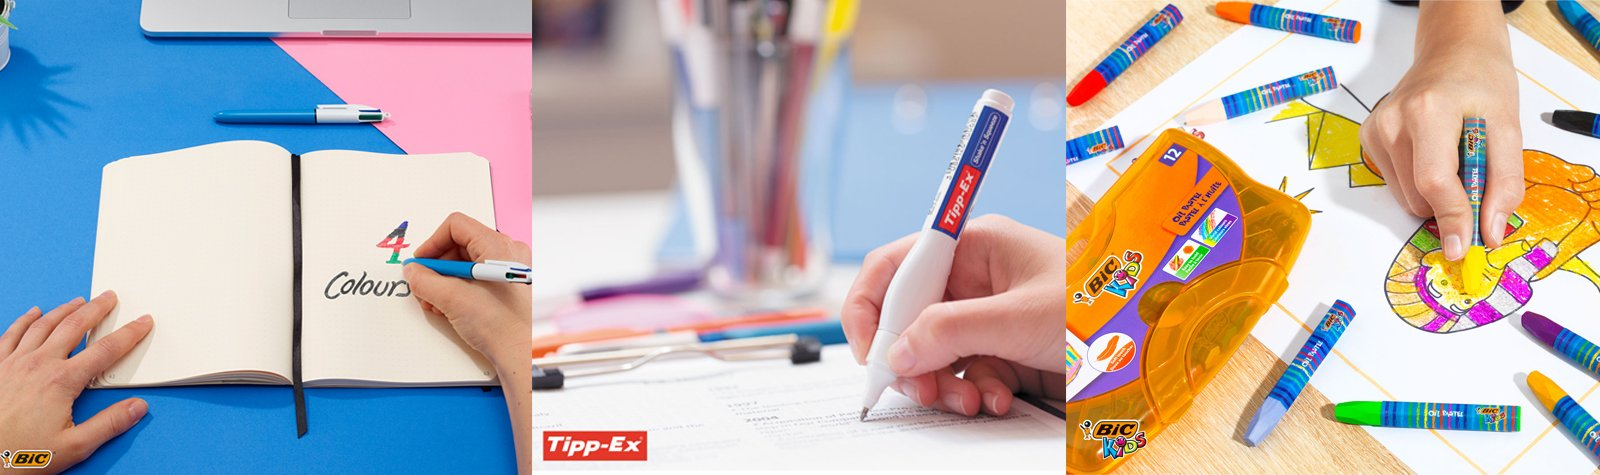 Miller Distributors Ltd appointed local distributor for BIC Stationery